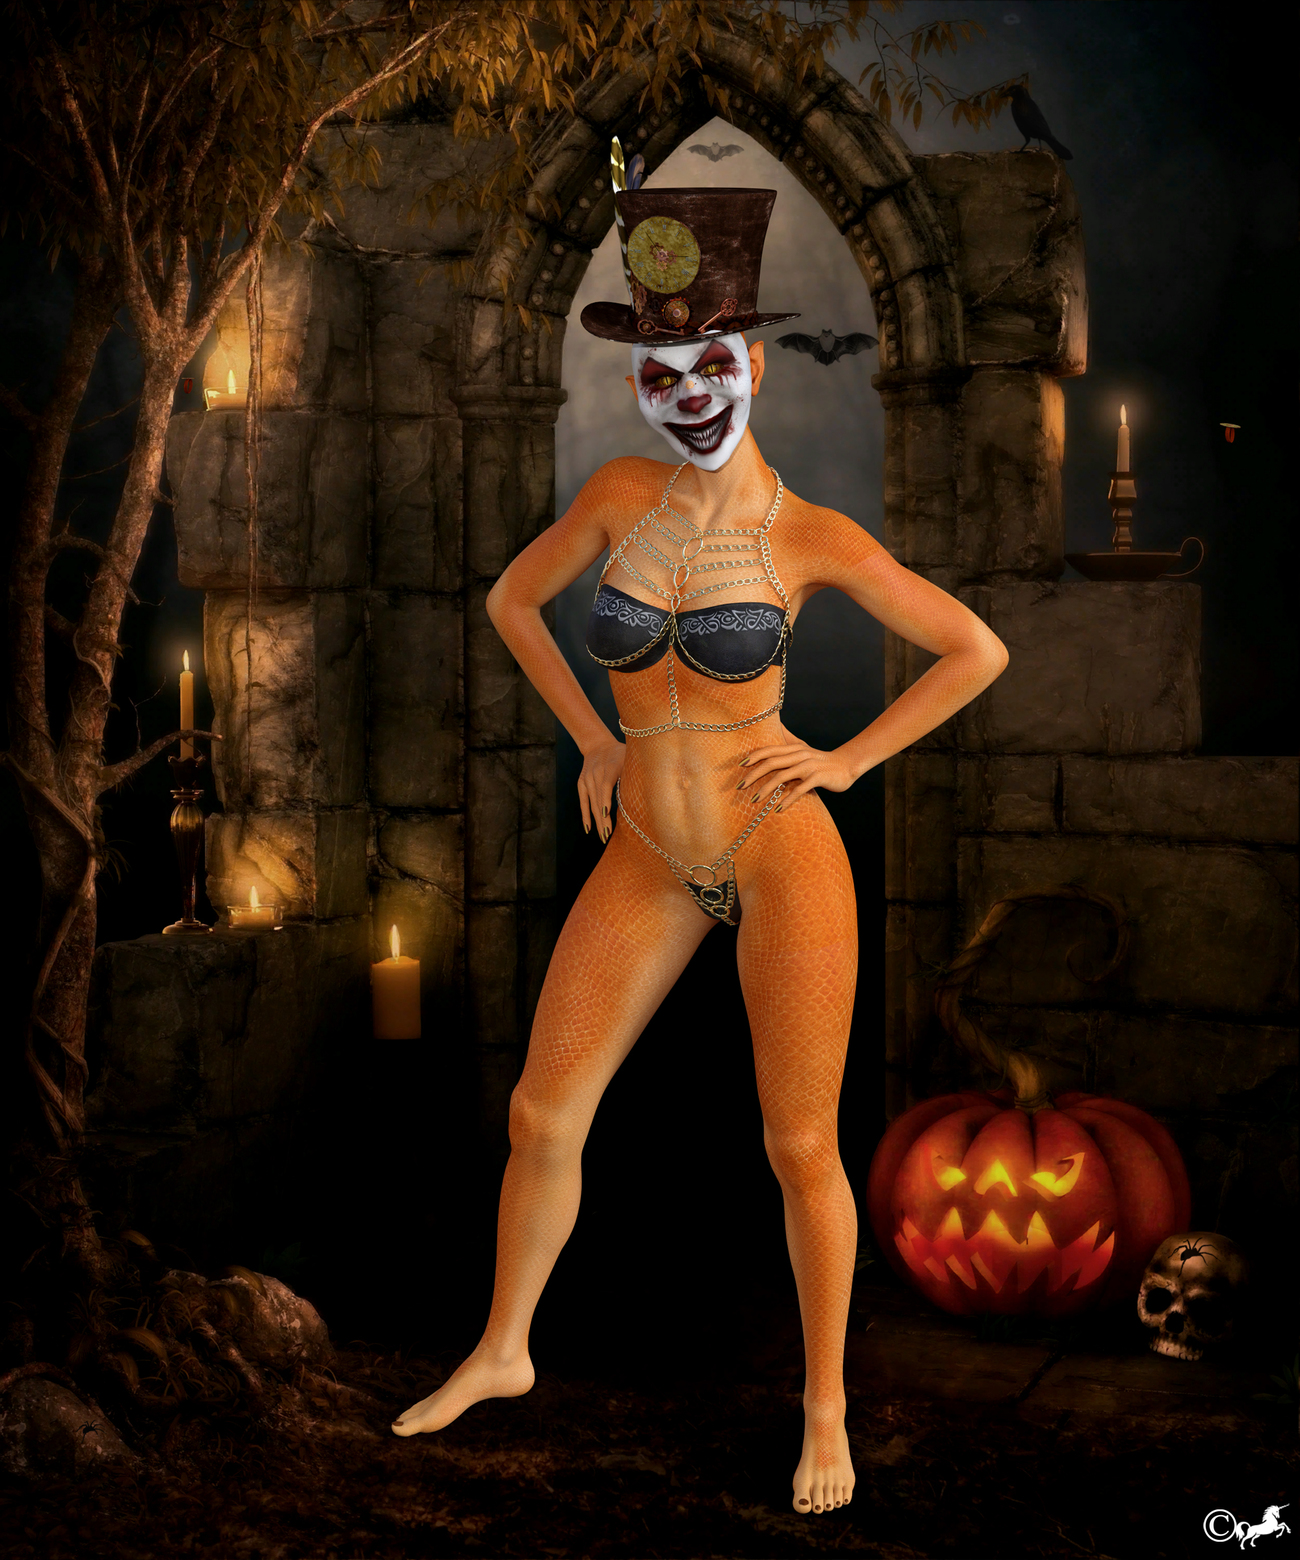 DAZ 273 or Preparing for Helloween by miwi